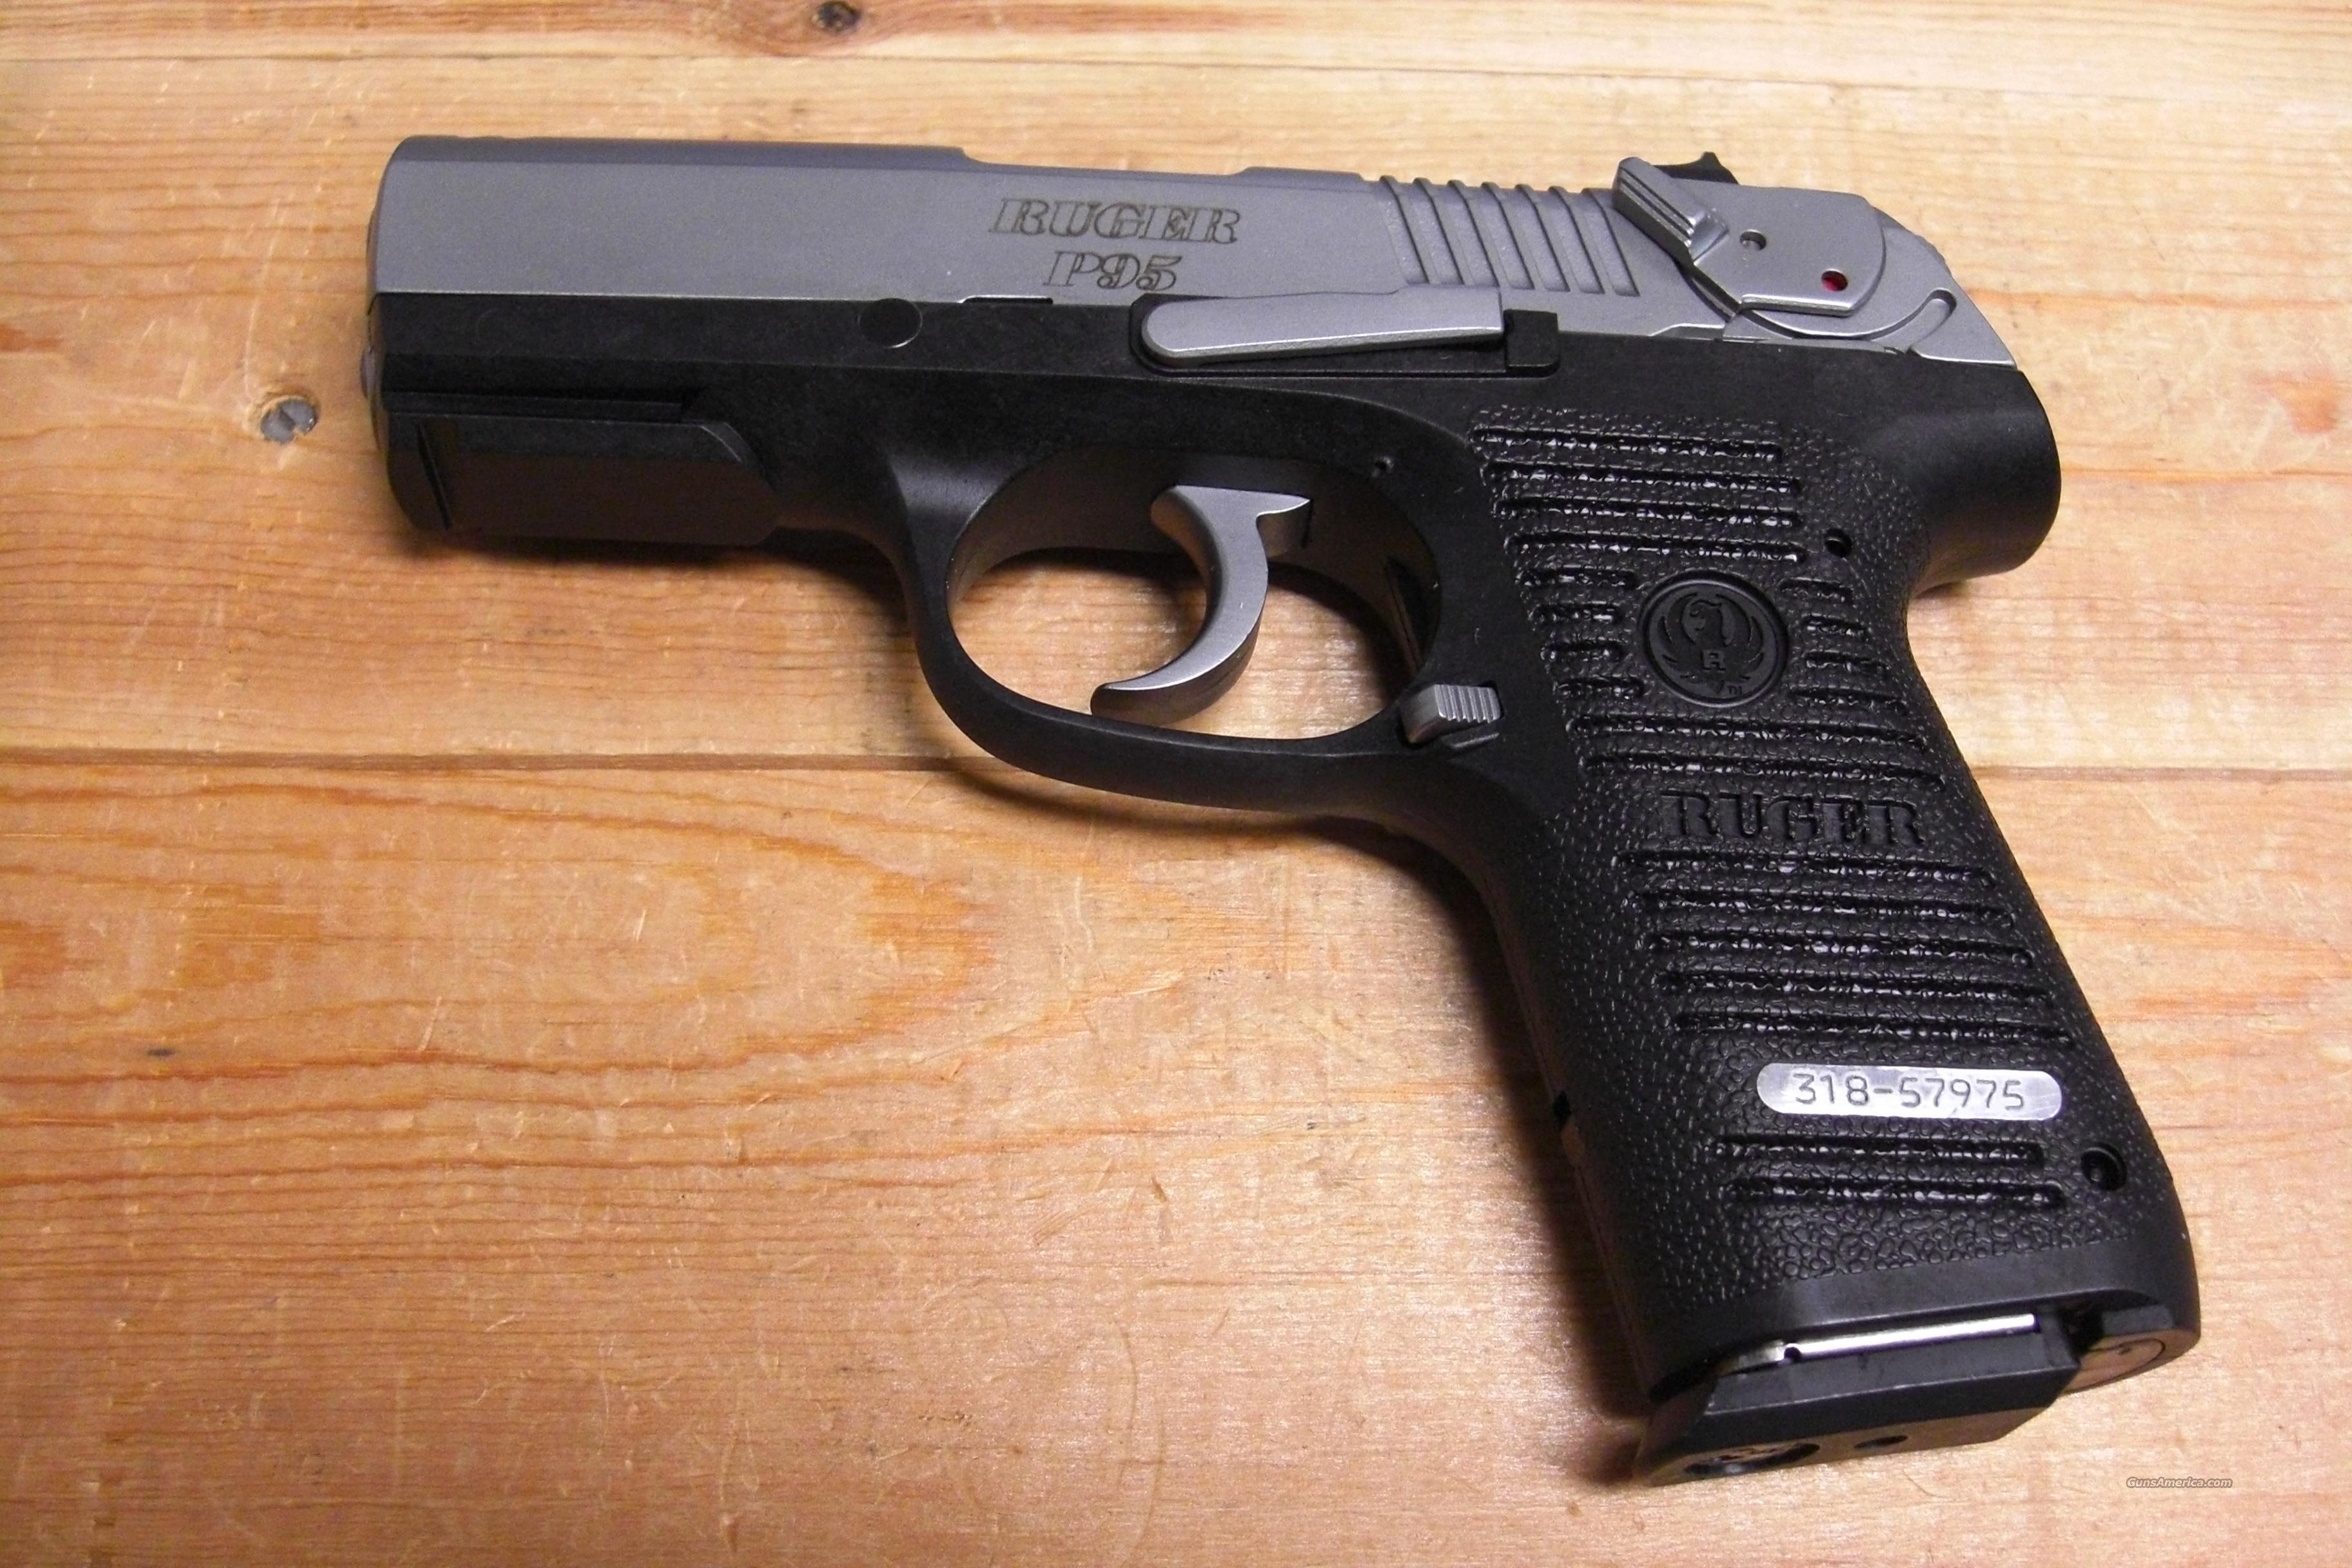 P95 w/stainless slide  Guns > Pistols > Ruger Semi-Auto Pistols > P-Series